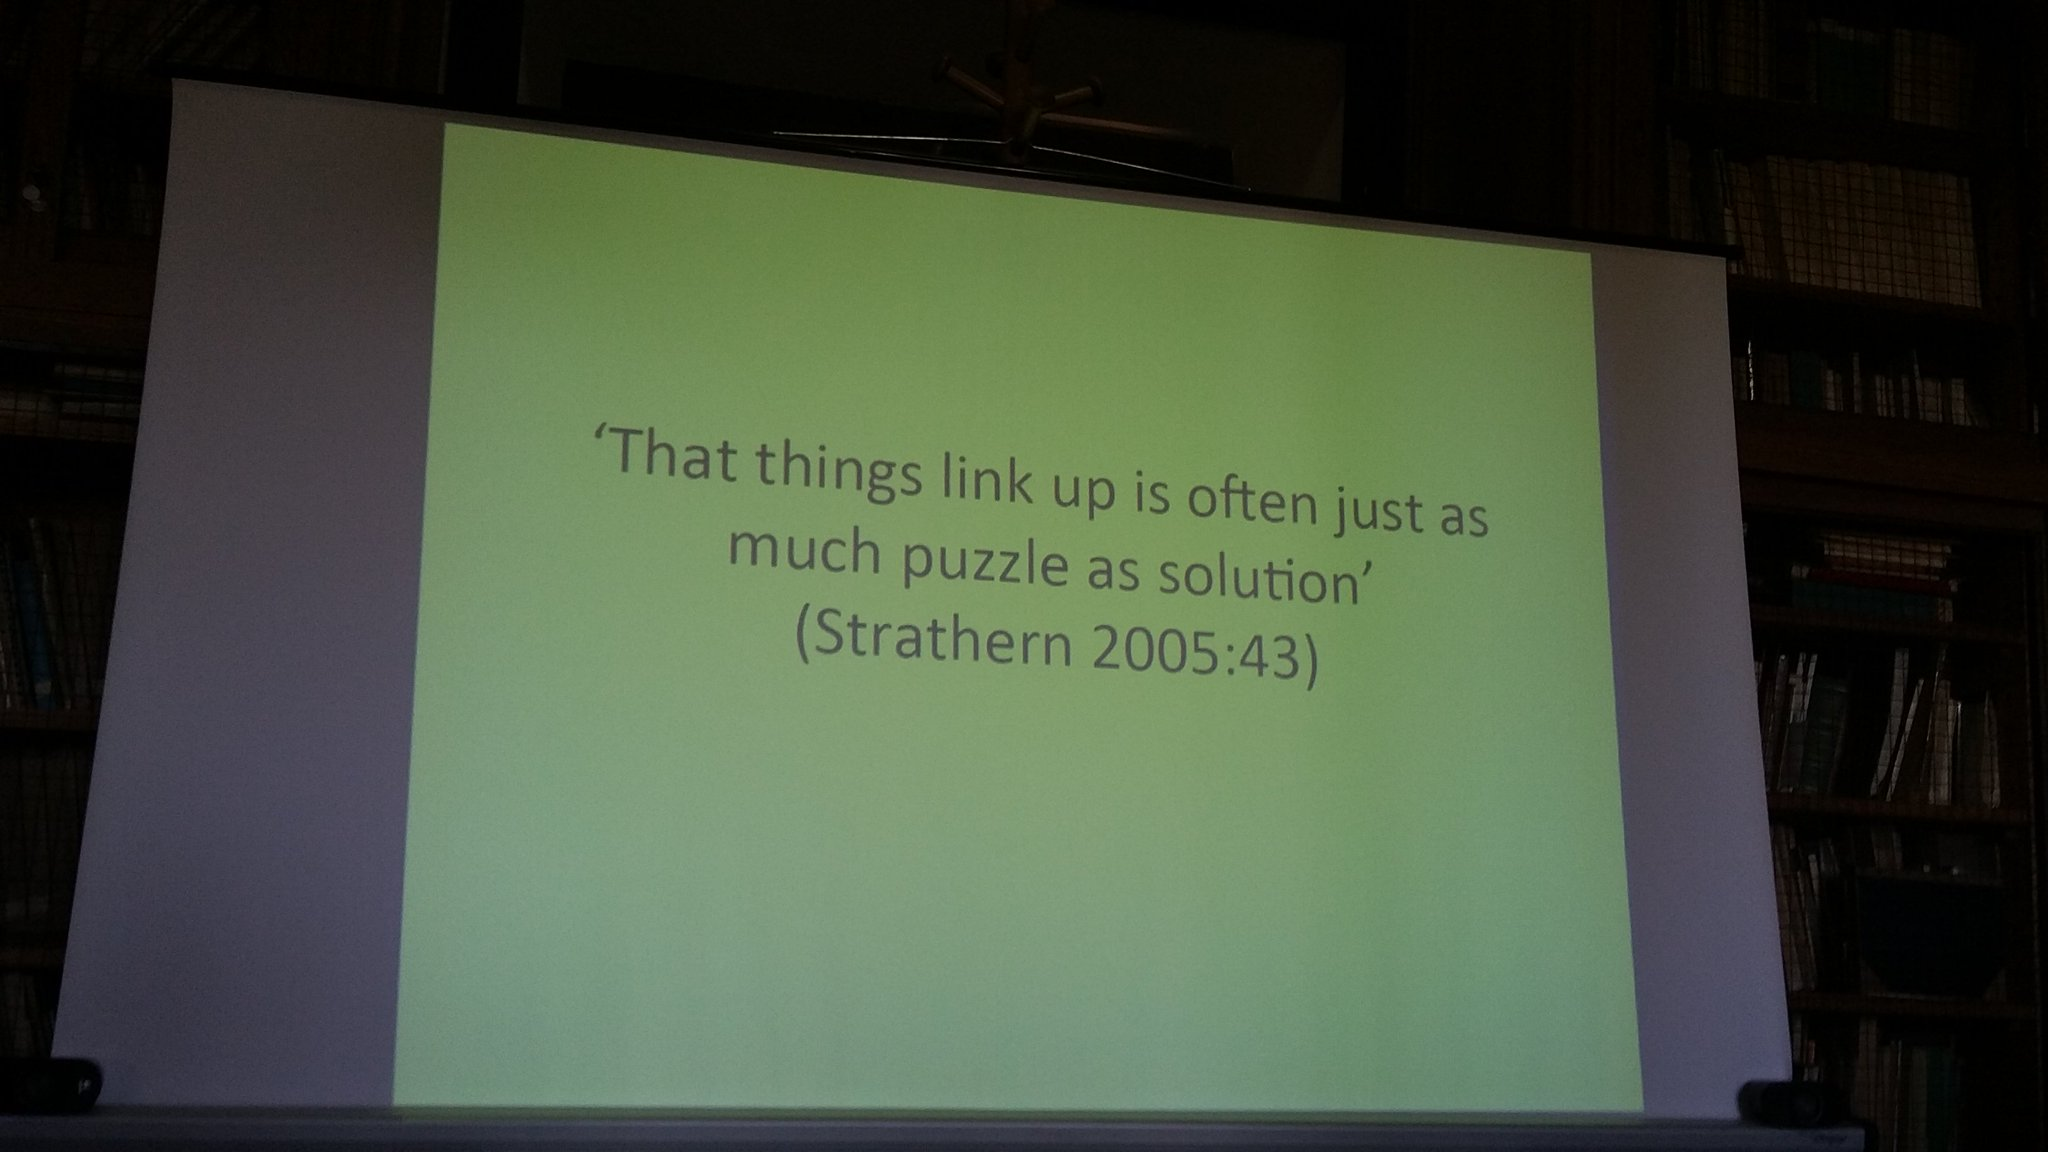 "#colleex @kaisirlin twitter exploration's closing quote ""That things link up is often just as much puzzle as solution"" (Strathern 2005:43) https://t.co/quH6X6rDFp"